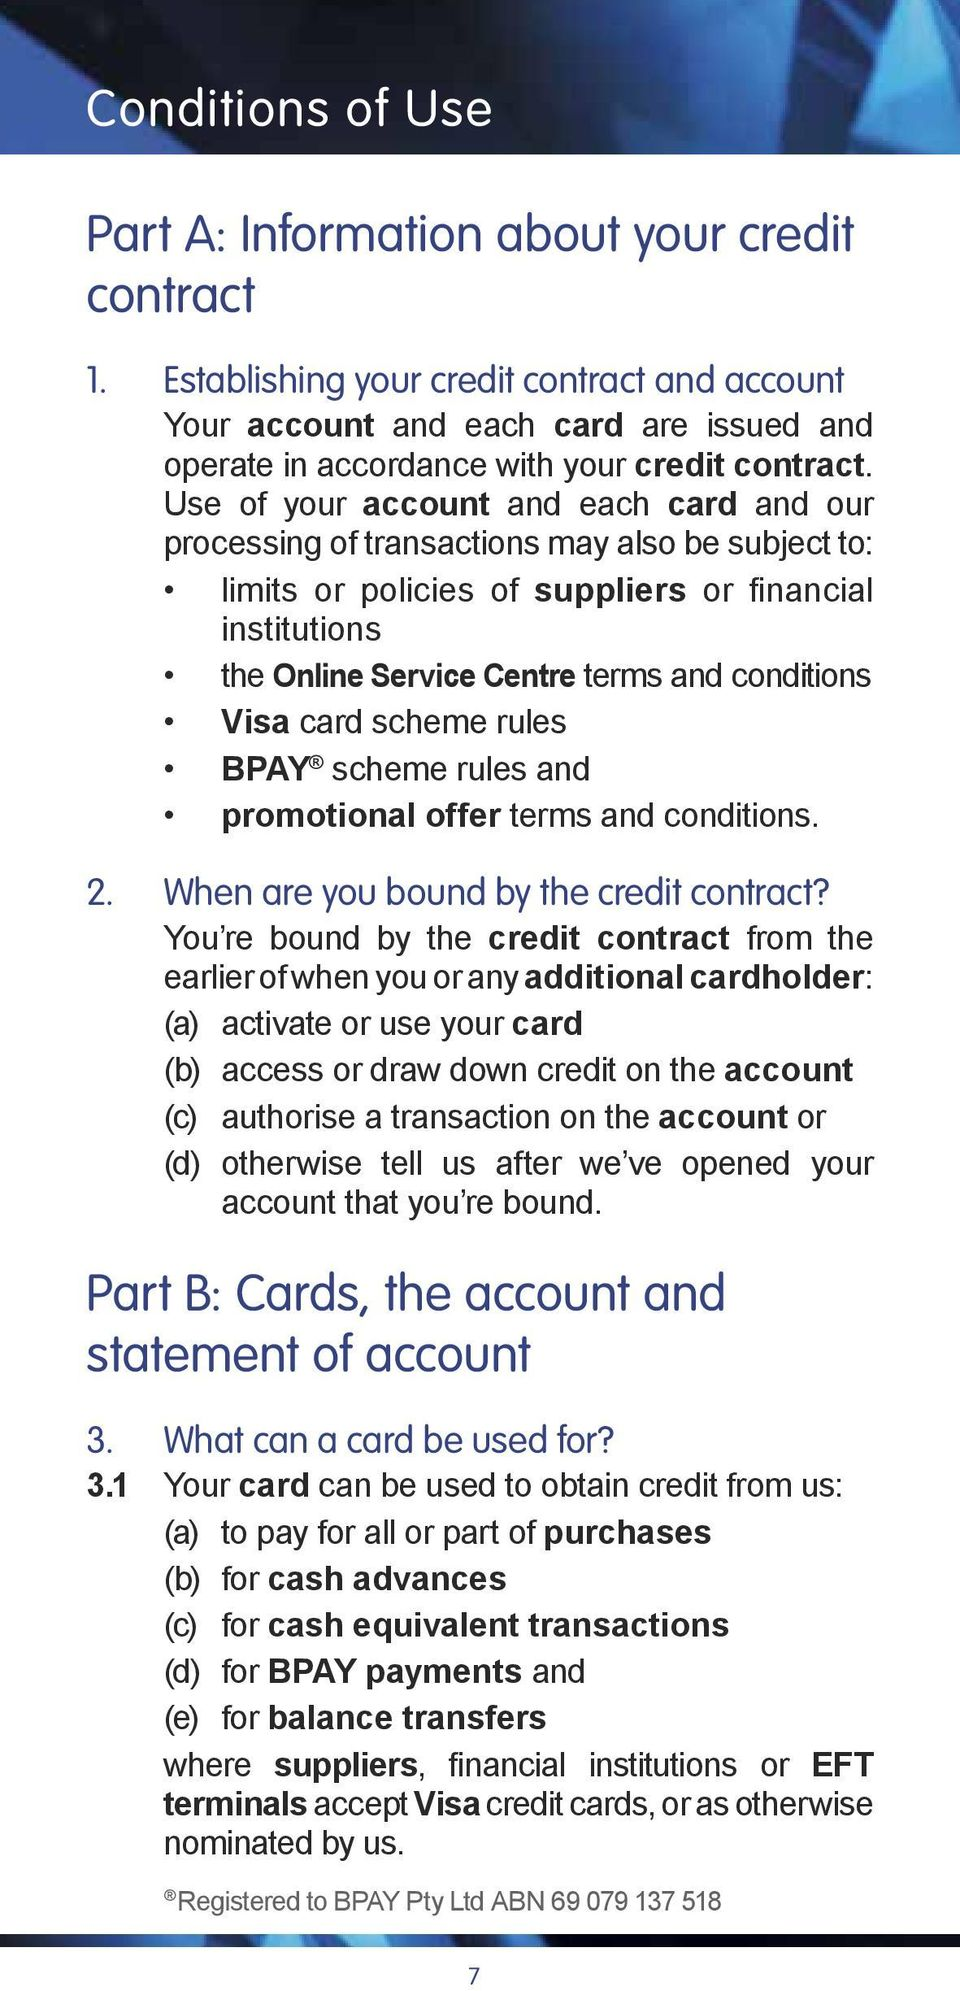 Use of your account and each card and our processing of transactions may also be subject to: limits or policies of suppliers or financial institutions the Online Service Centre terms and conditions